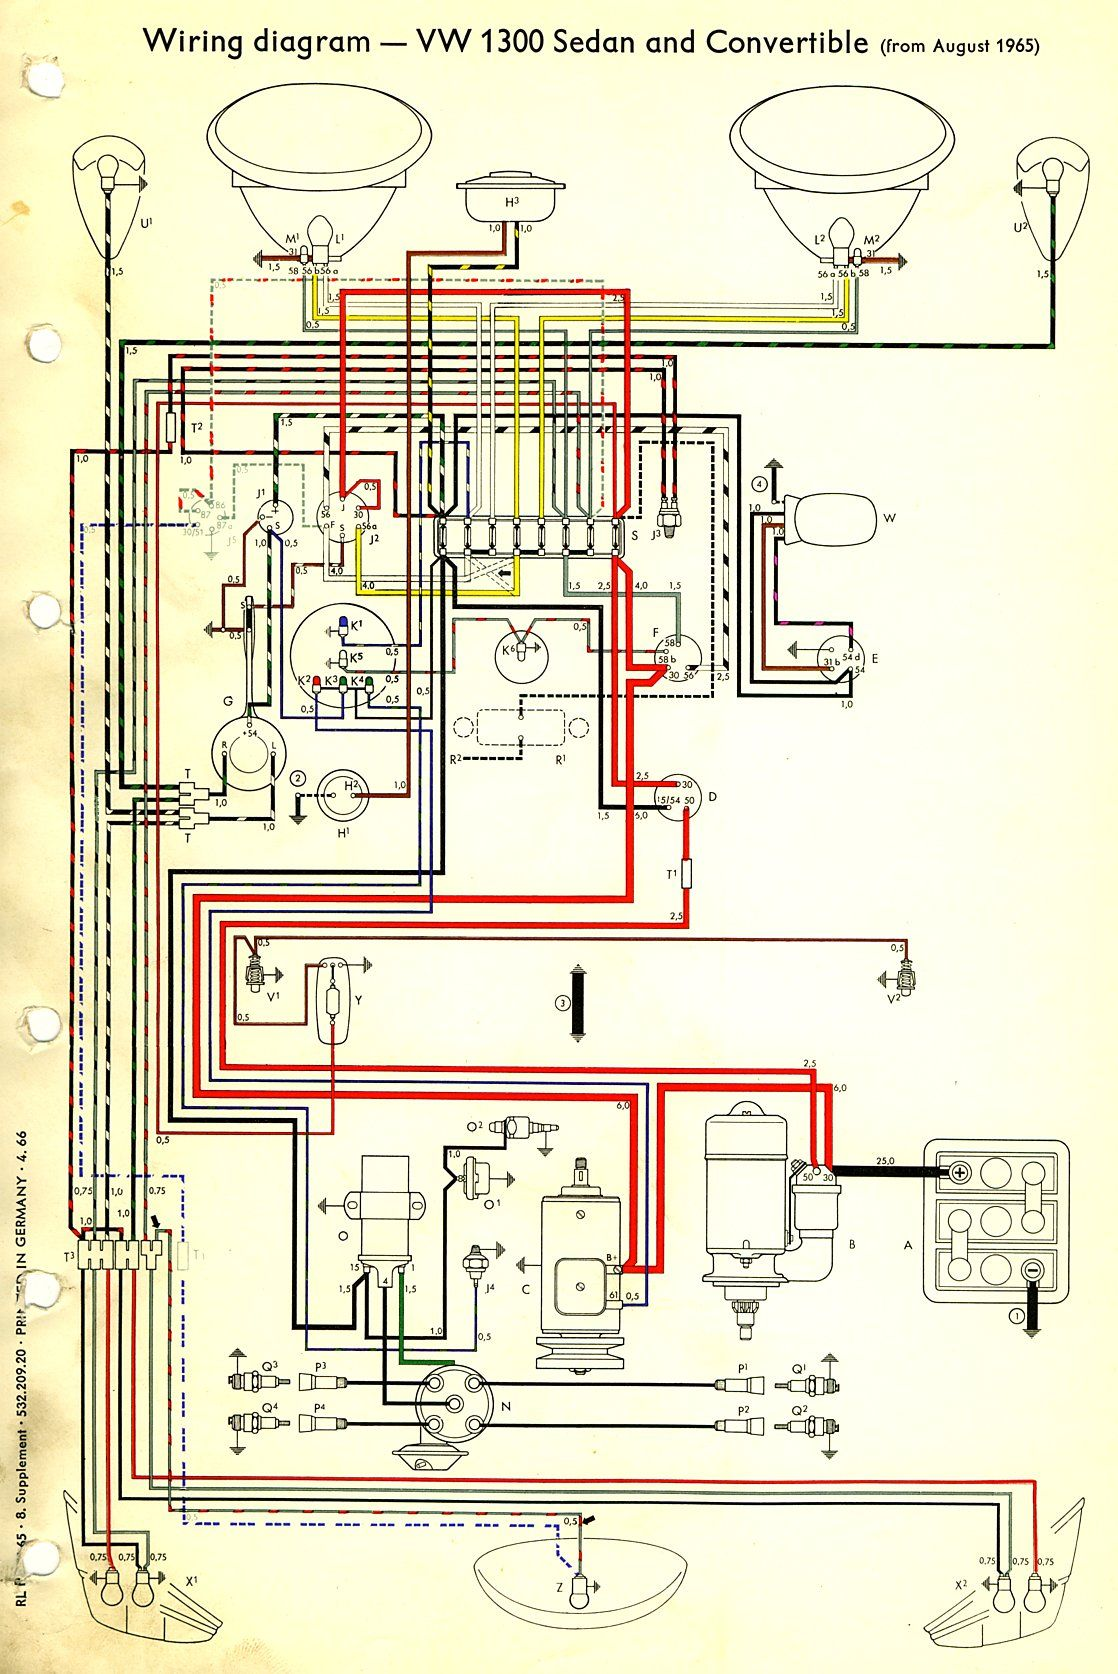 1966 beetle wiring diagram thegoldenbug com pichi pinterest 1963 vw bug  wiring-diagram 1966 beetle